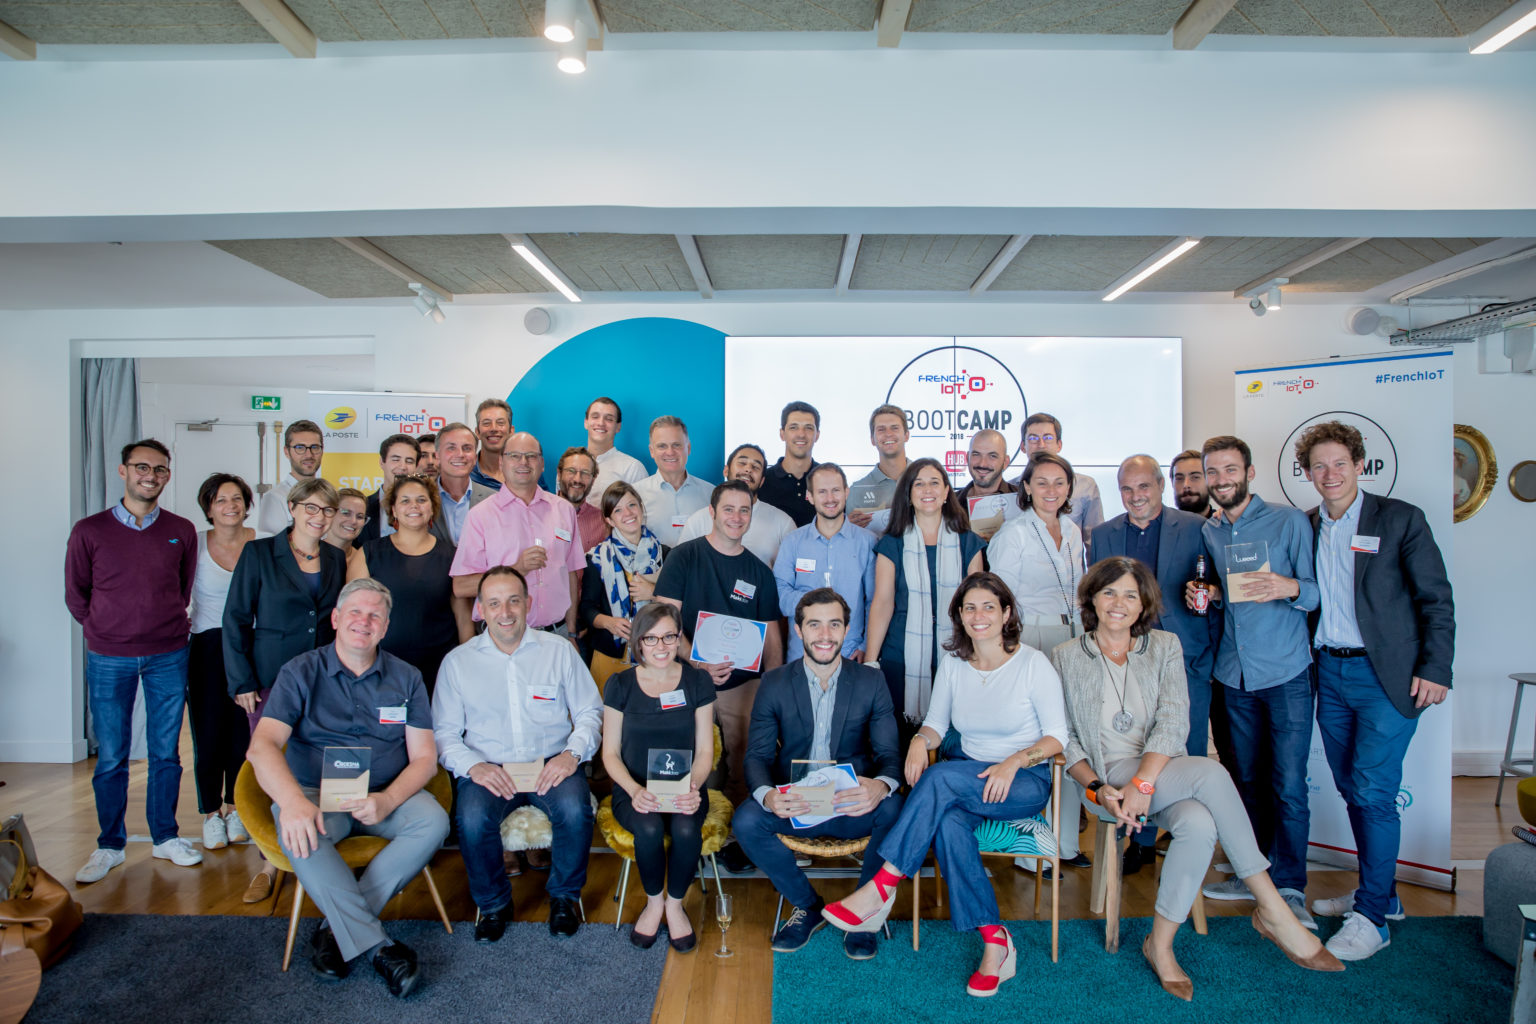 Best of du Bootcamp French IoT 2018